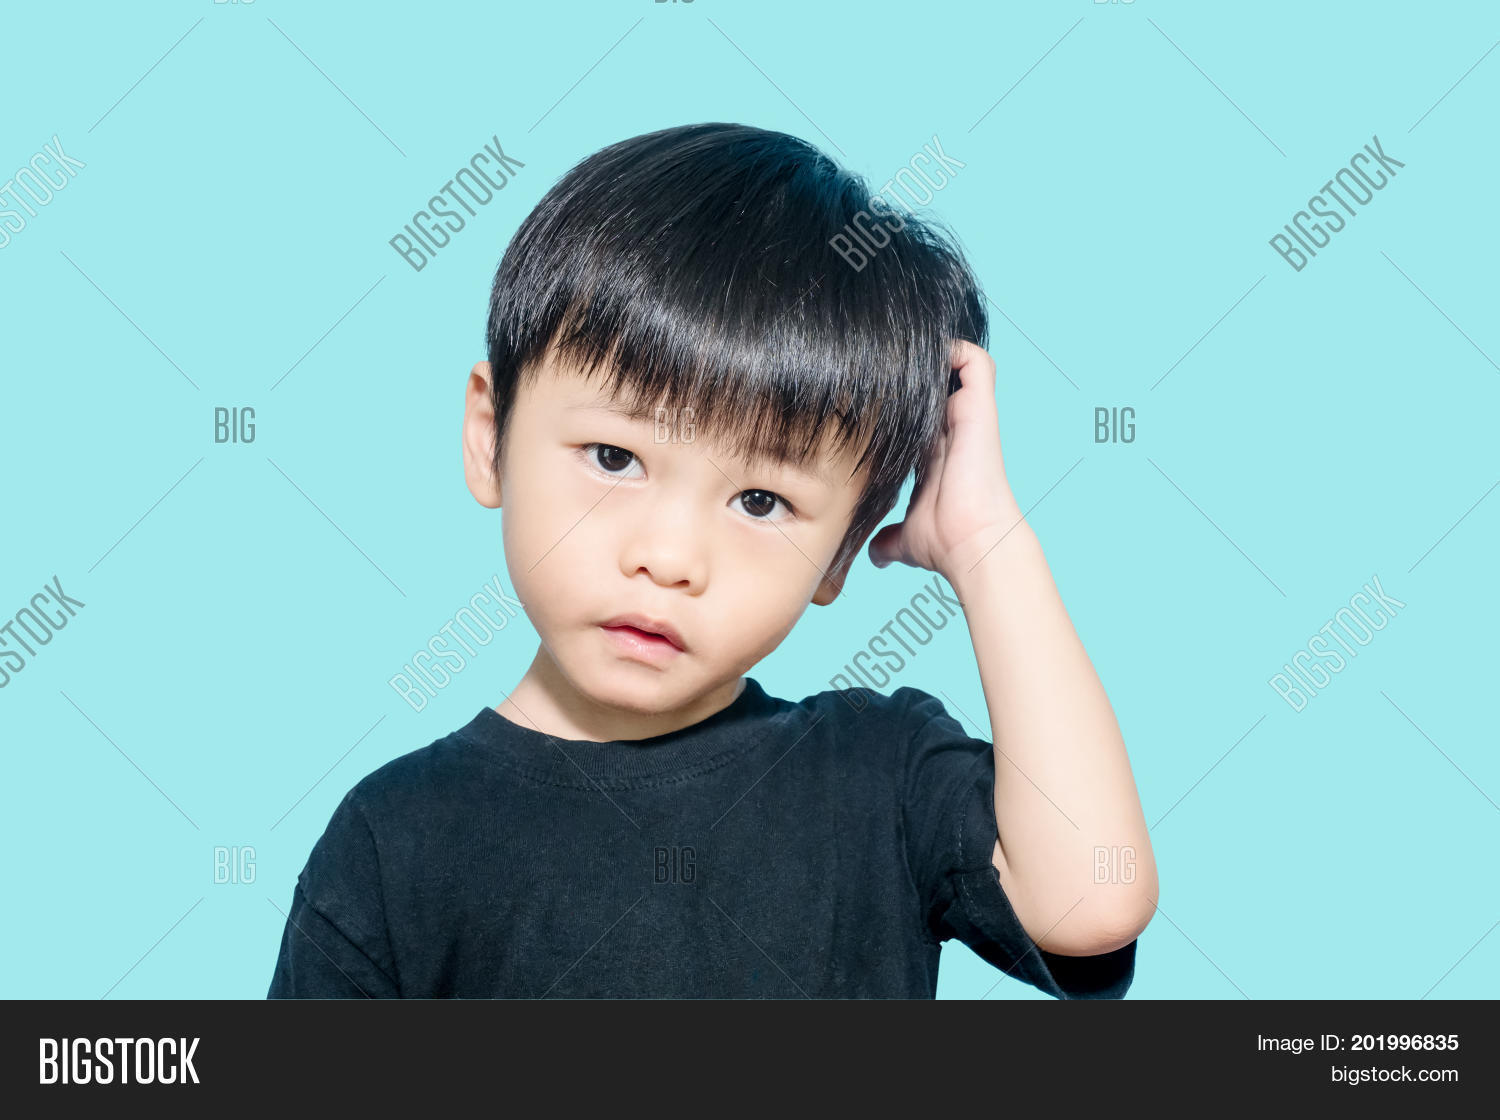 boy Picture of asian